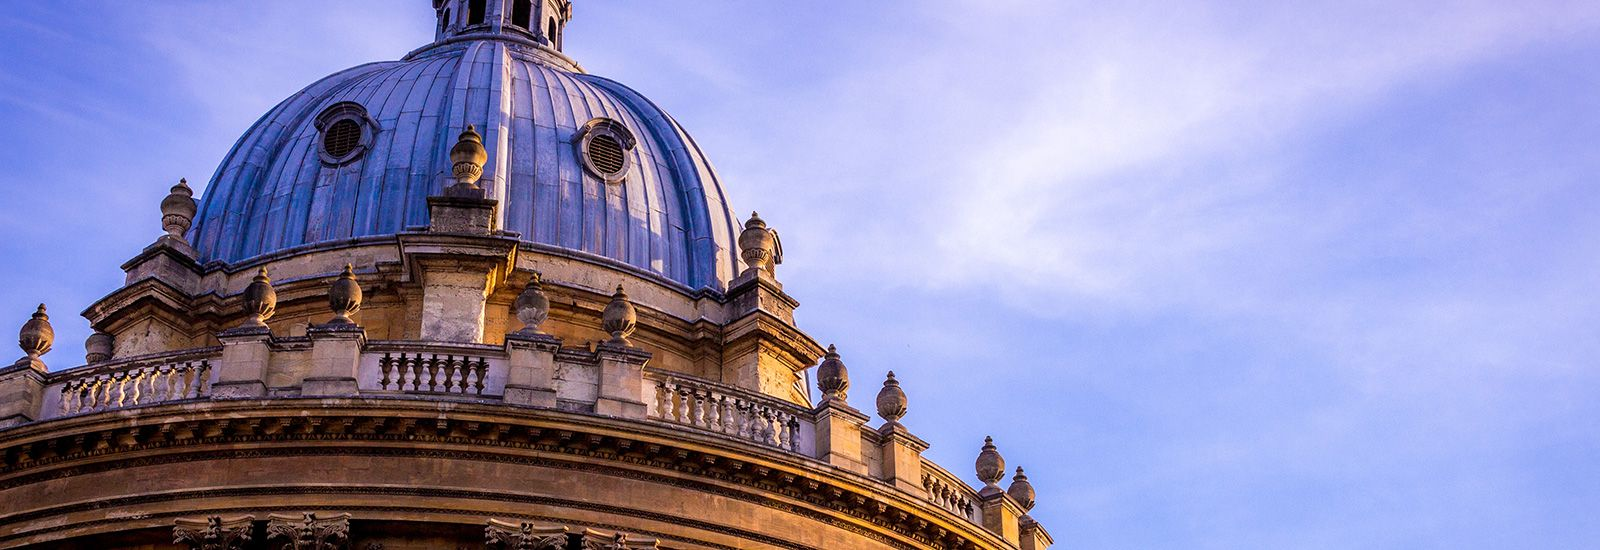 The dome of the Radcliffe Camera against a blue sky